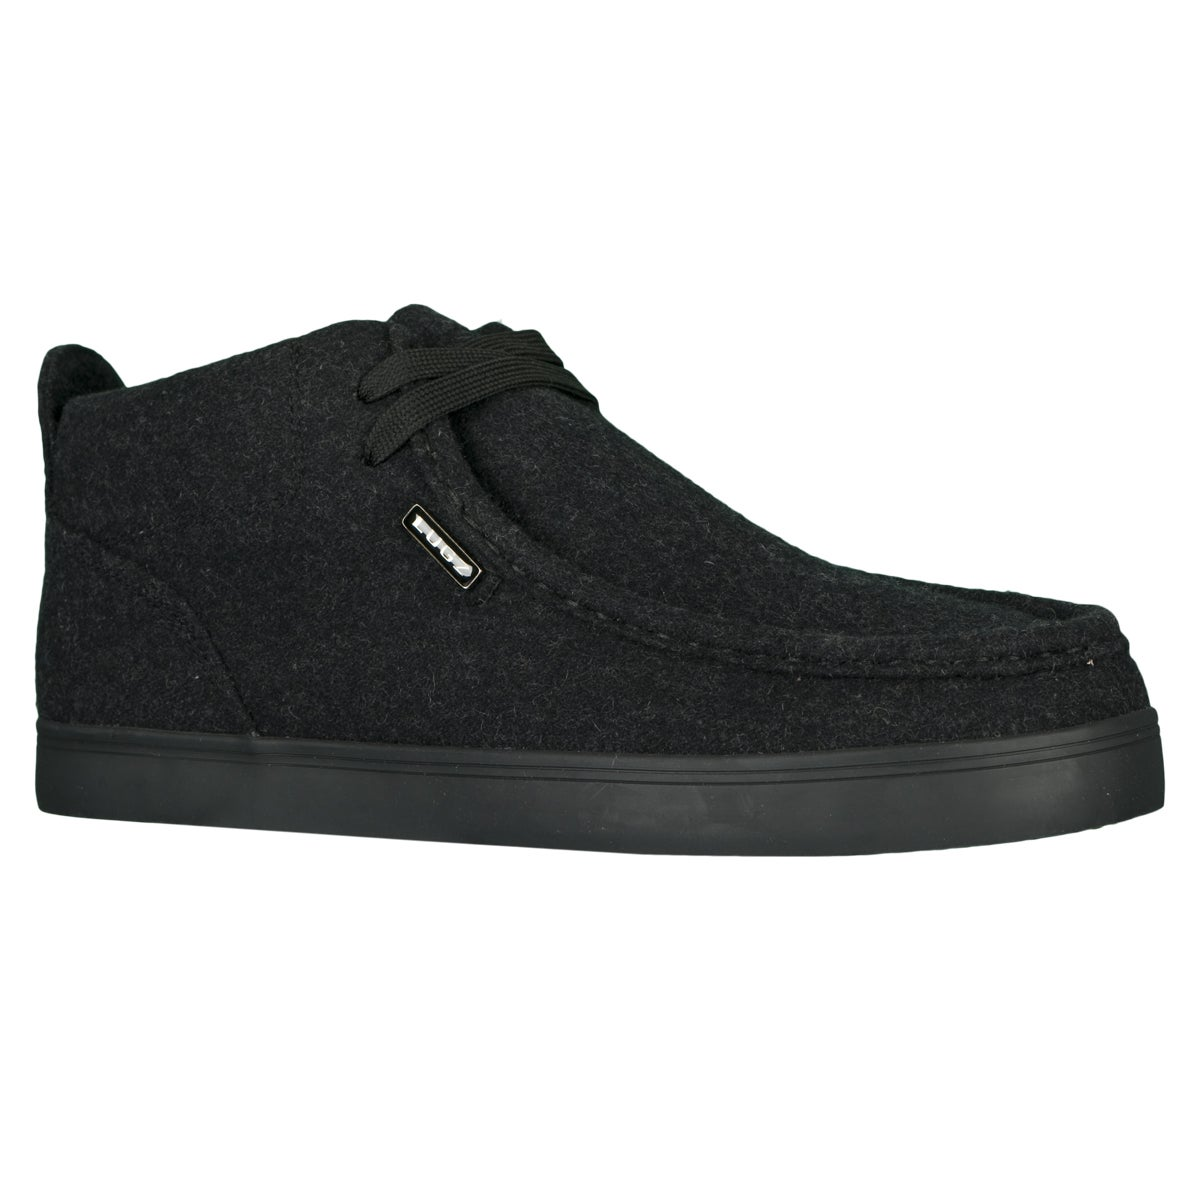 Lugz Men's Strider Peacoat Shoe - Thumbnail 0